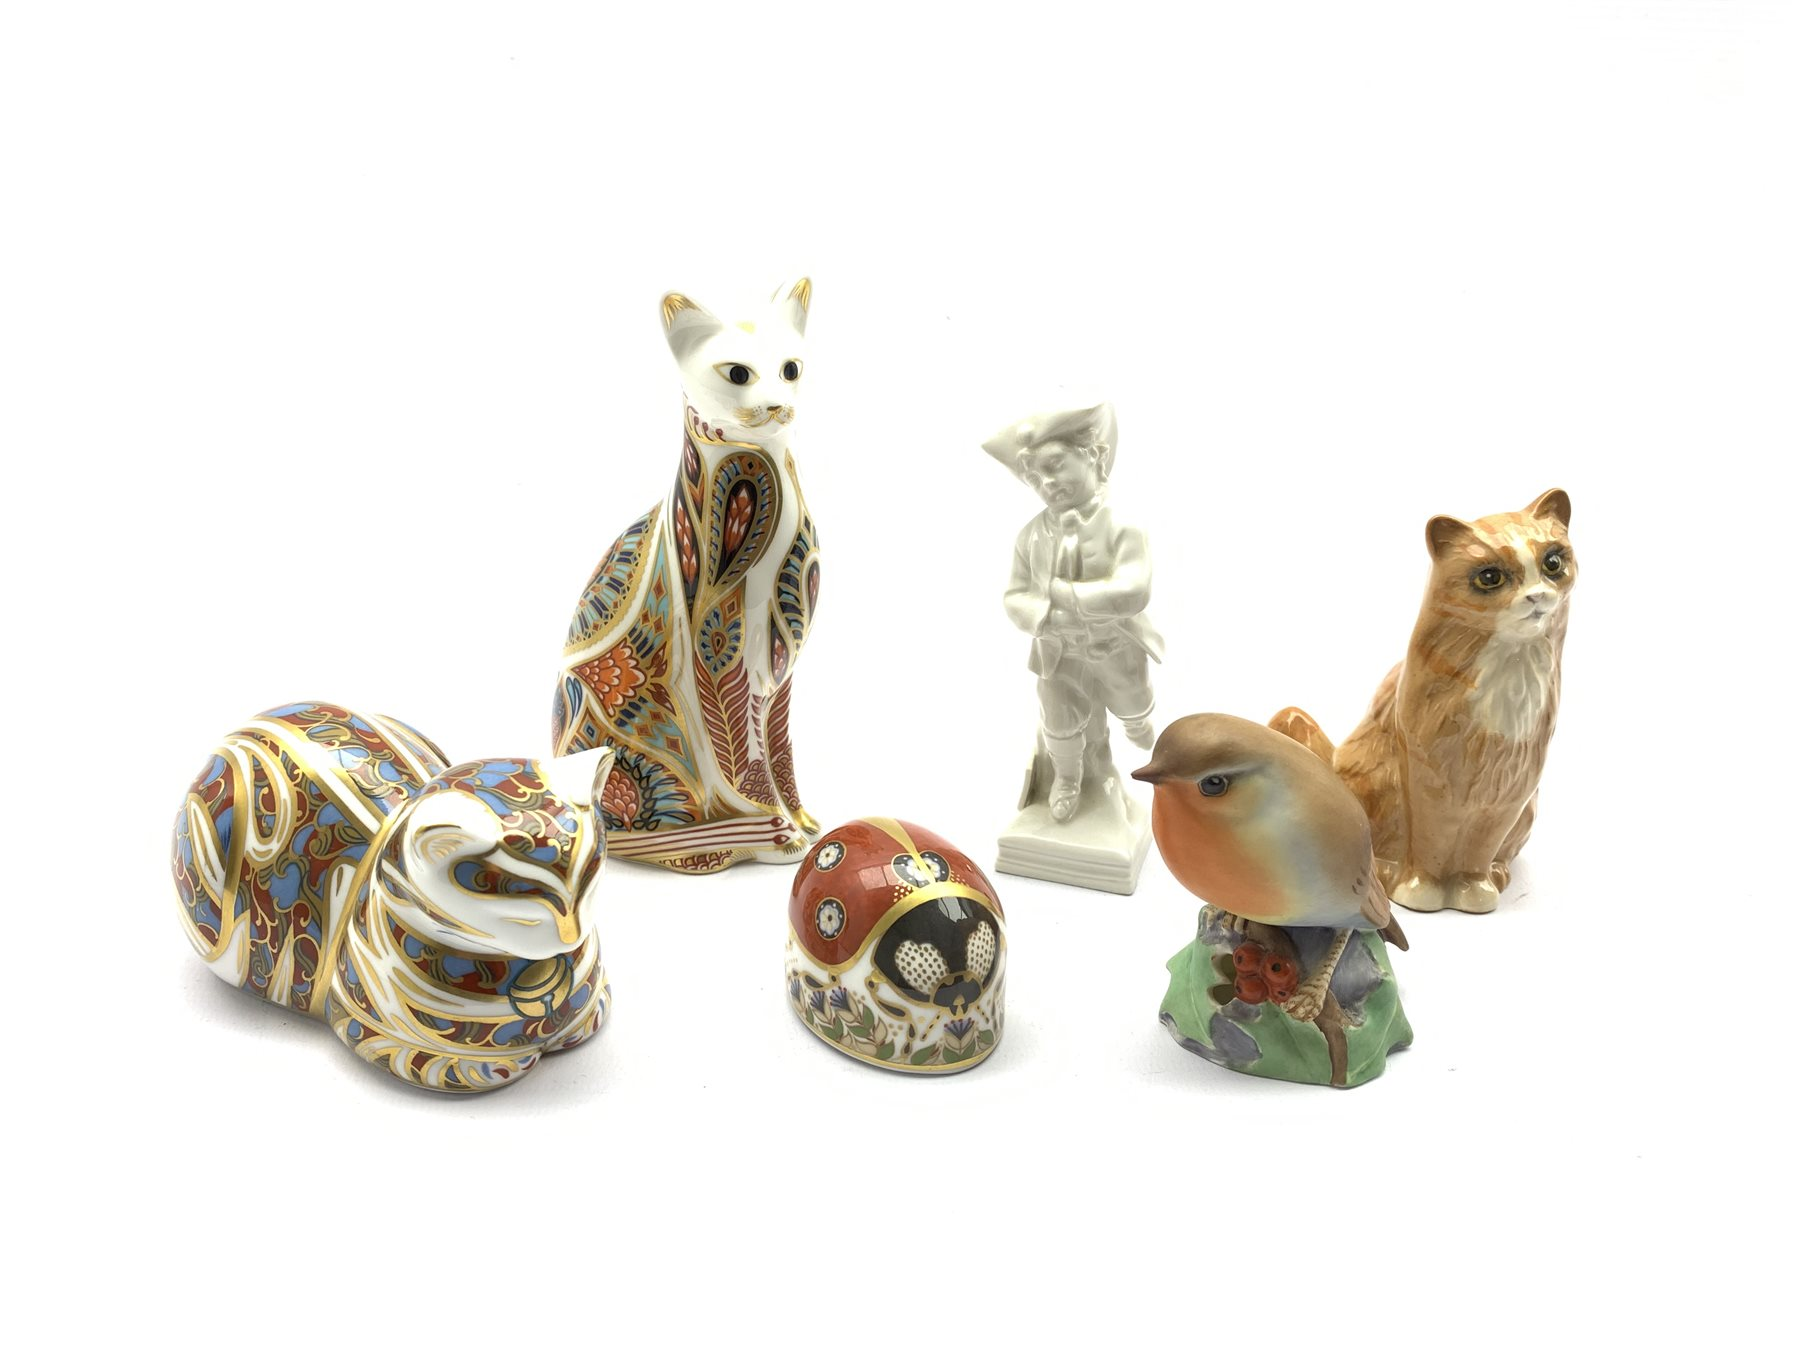 Berlin white glazed porcelain figure ice skating on square base H11cm, three Crown Derby paperweight